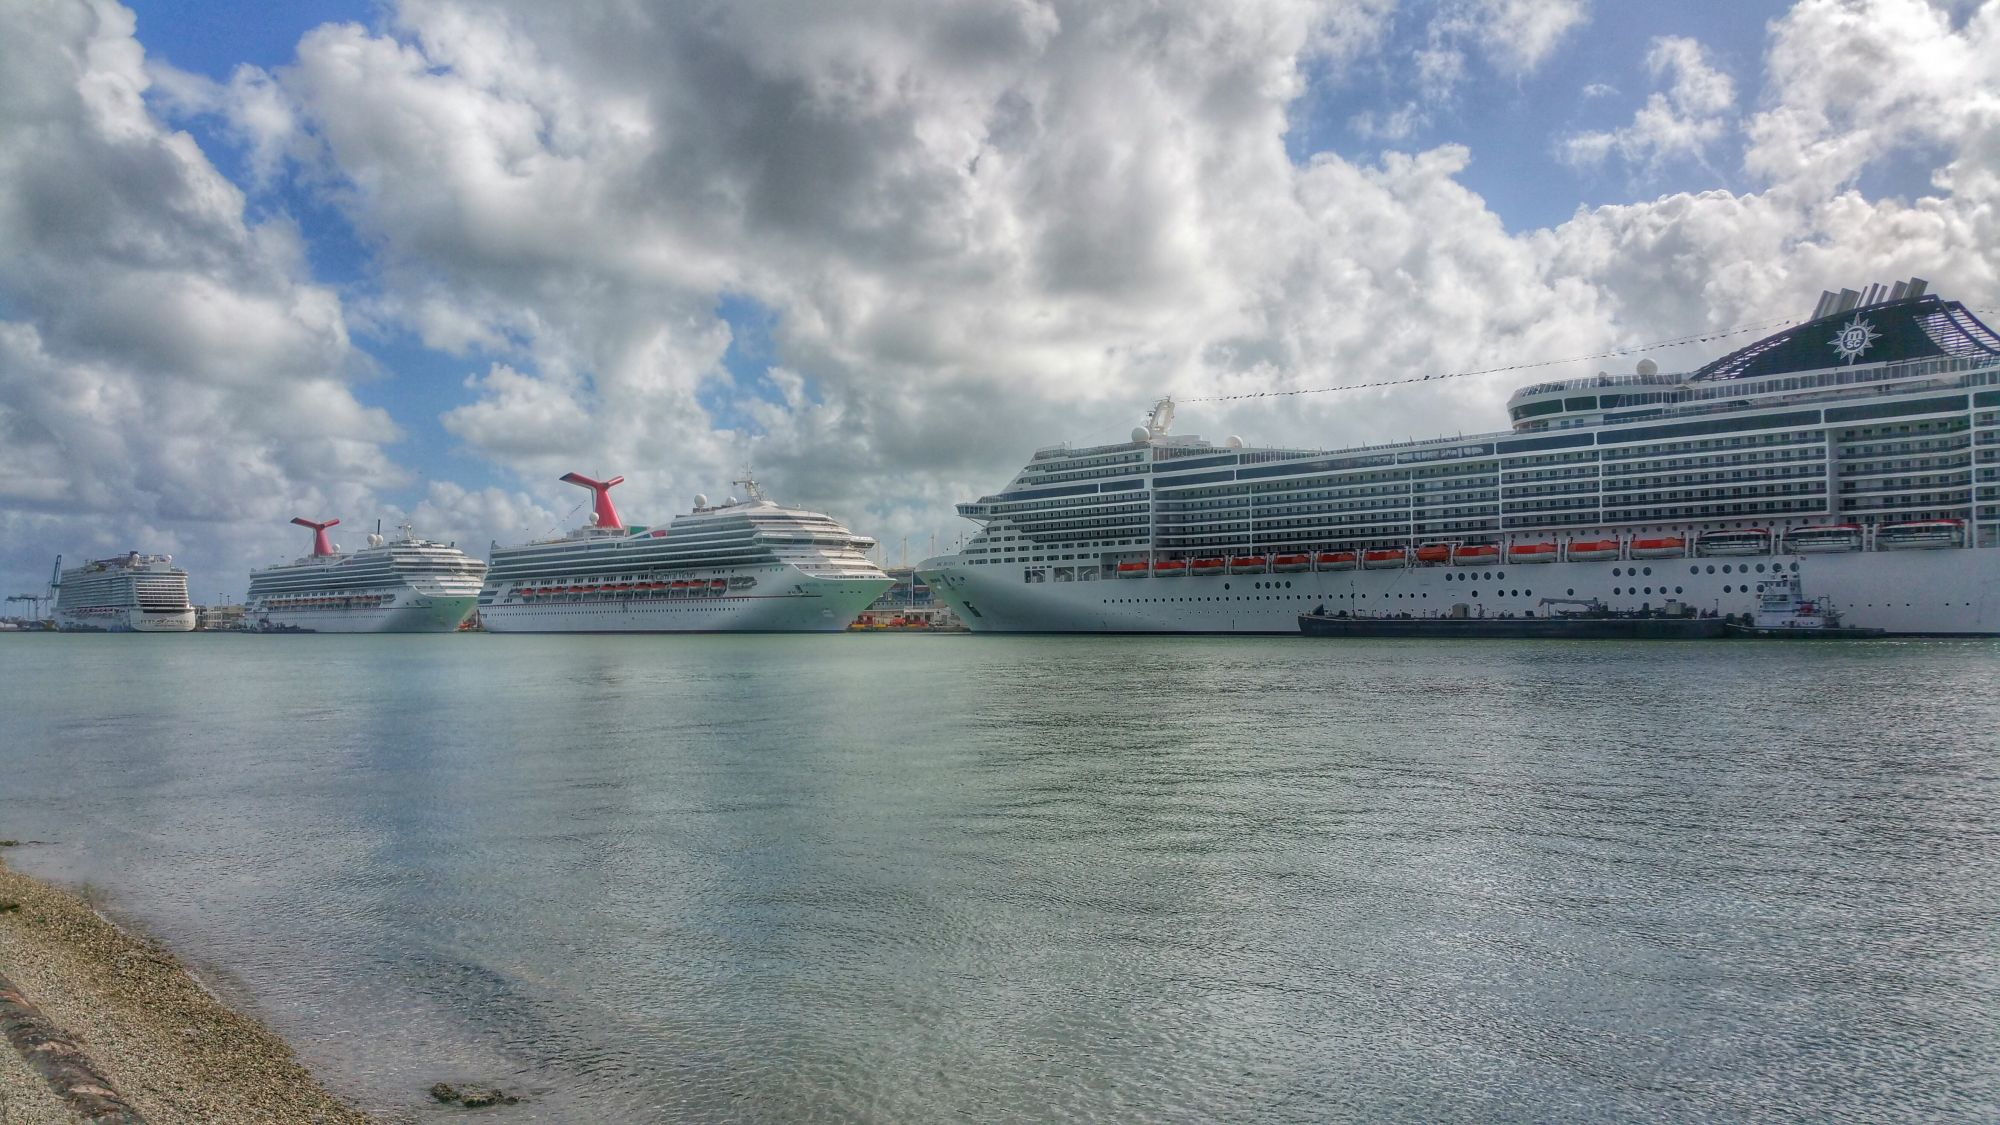 Miami Port The Best Spots To Watch Cruise Ships In Miami Gate To Adventures